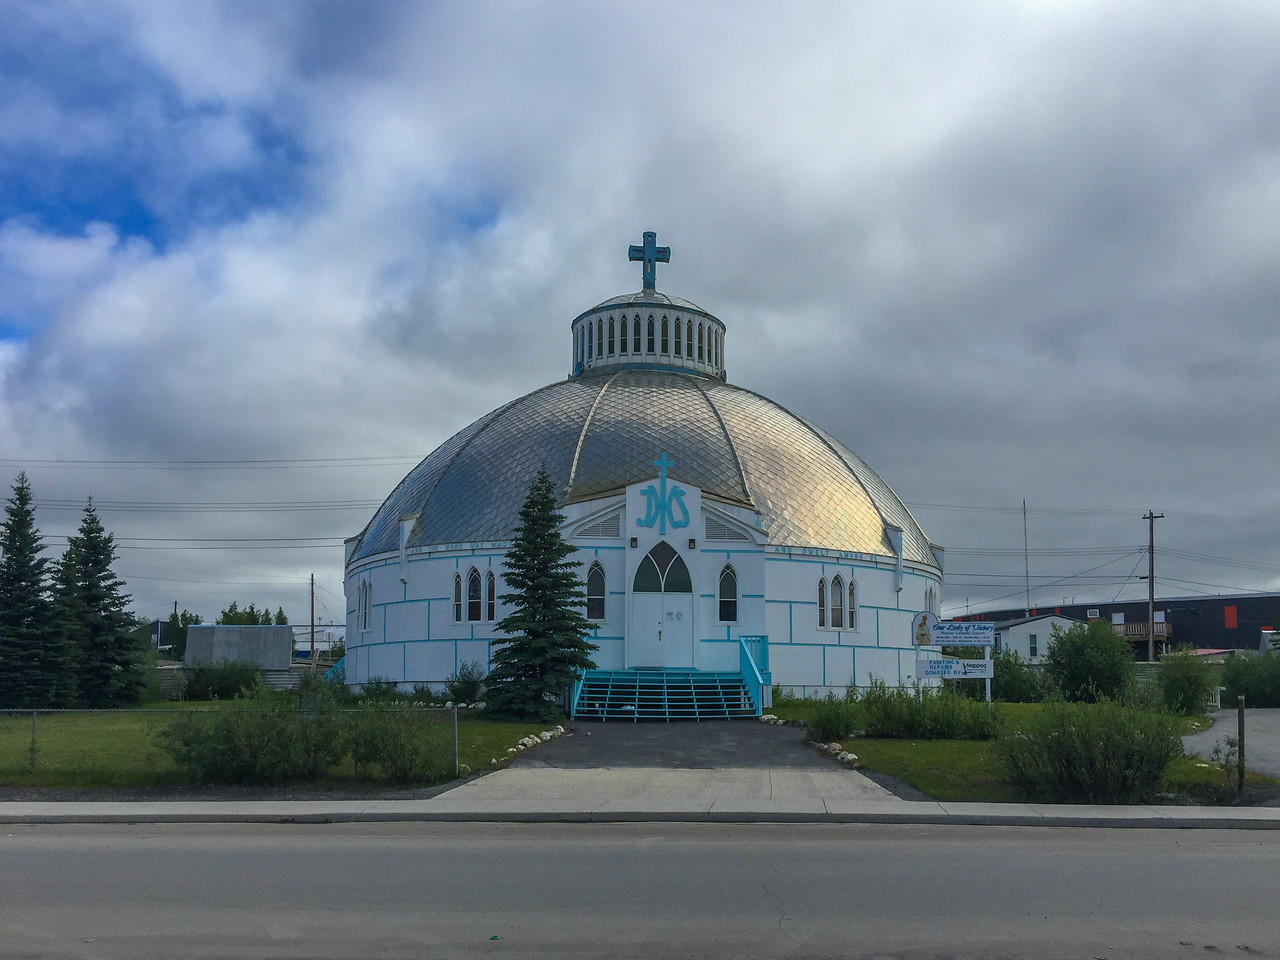 The small northern town of Inuvik, NWT.